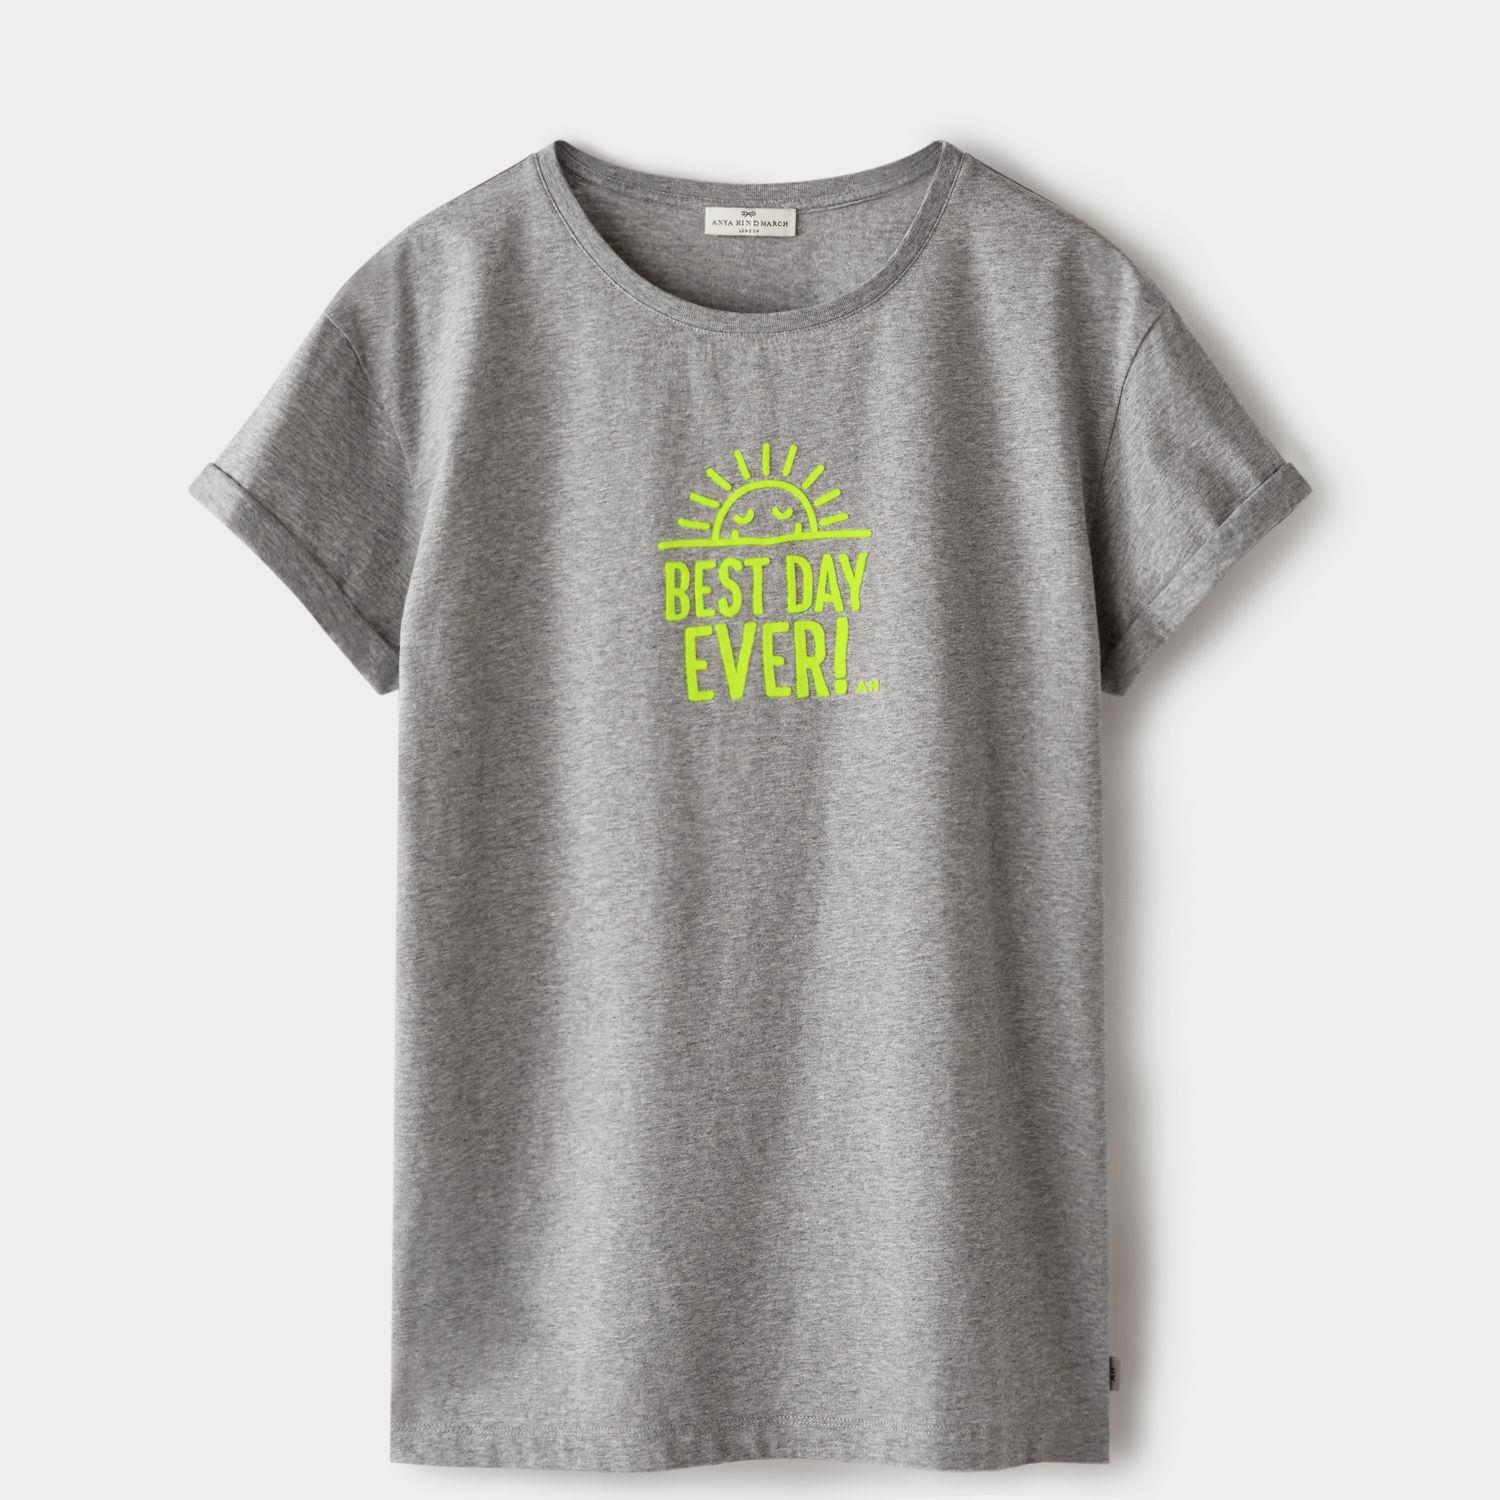 Anya Hindmarch Best Day Ever T-shirt dPMA8f9vCc